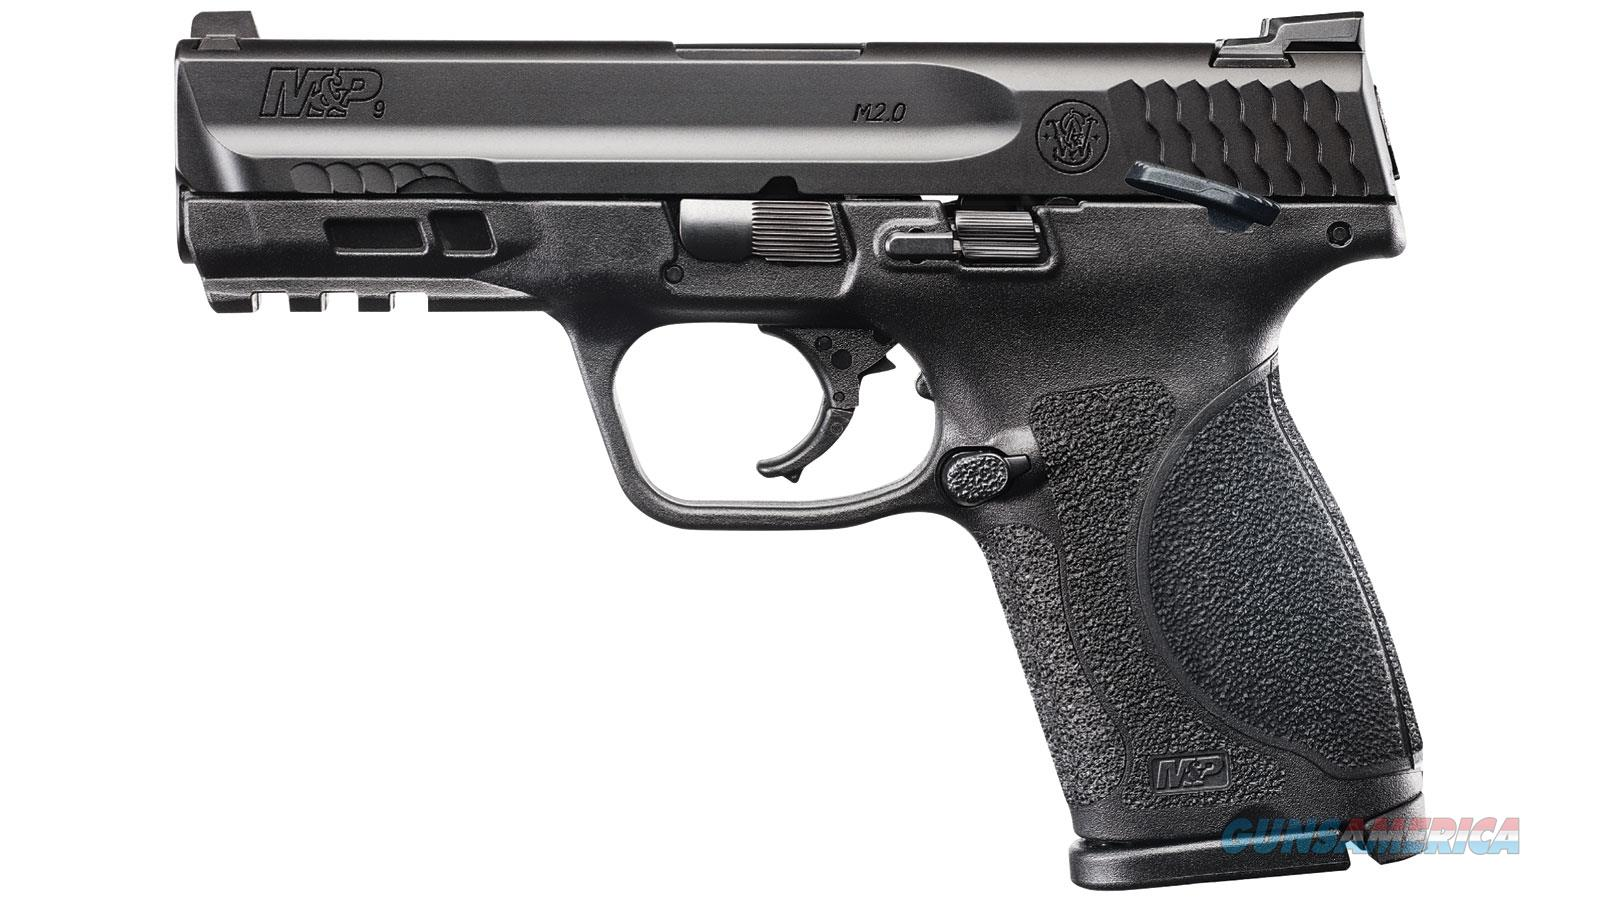 Smith & Wesson M&P9 M2.0 Compact 9Mm 4 15Rd Thumb Safety 11686  Guns > Pistols > S Misc Pistols